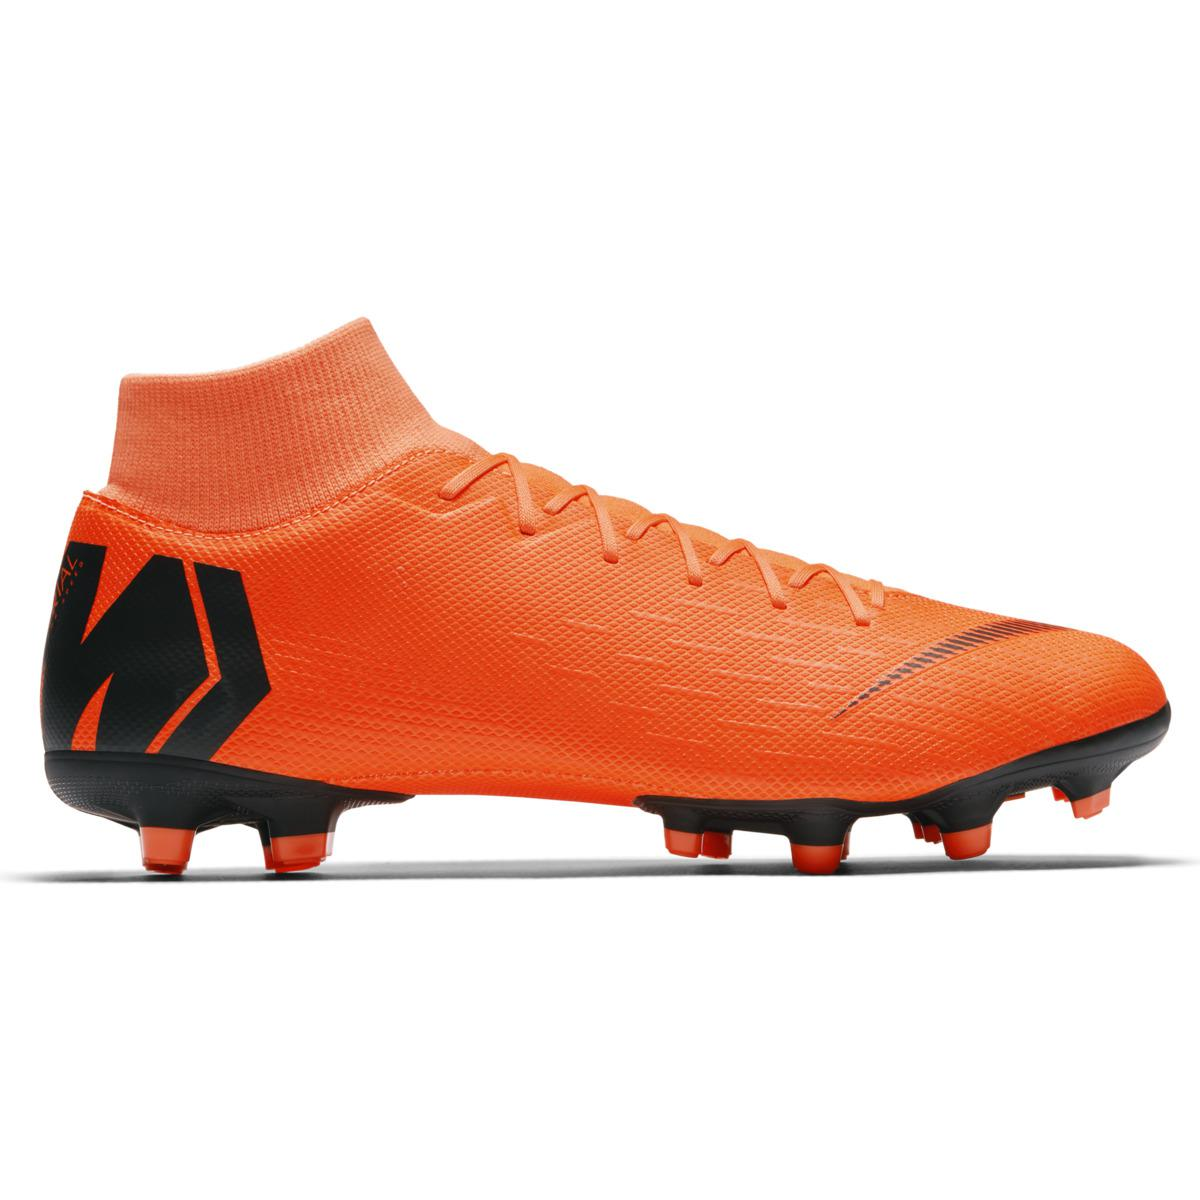 6823878b6 Lyst - Nike Mercurial Superfly Vi Academy Mg Football Boots in ...